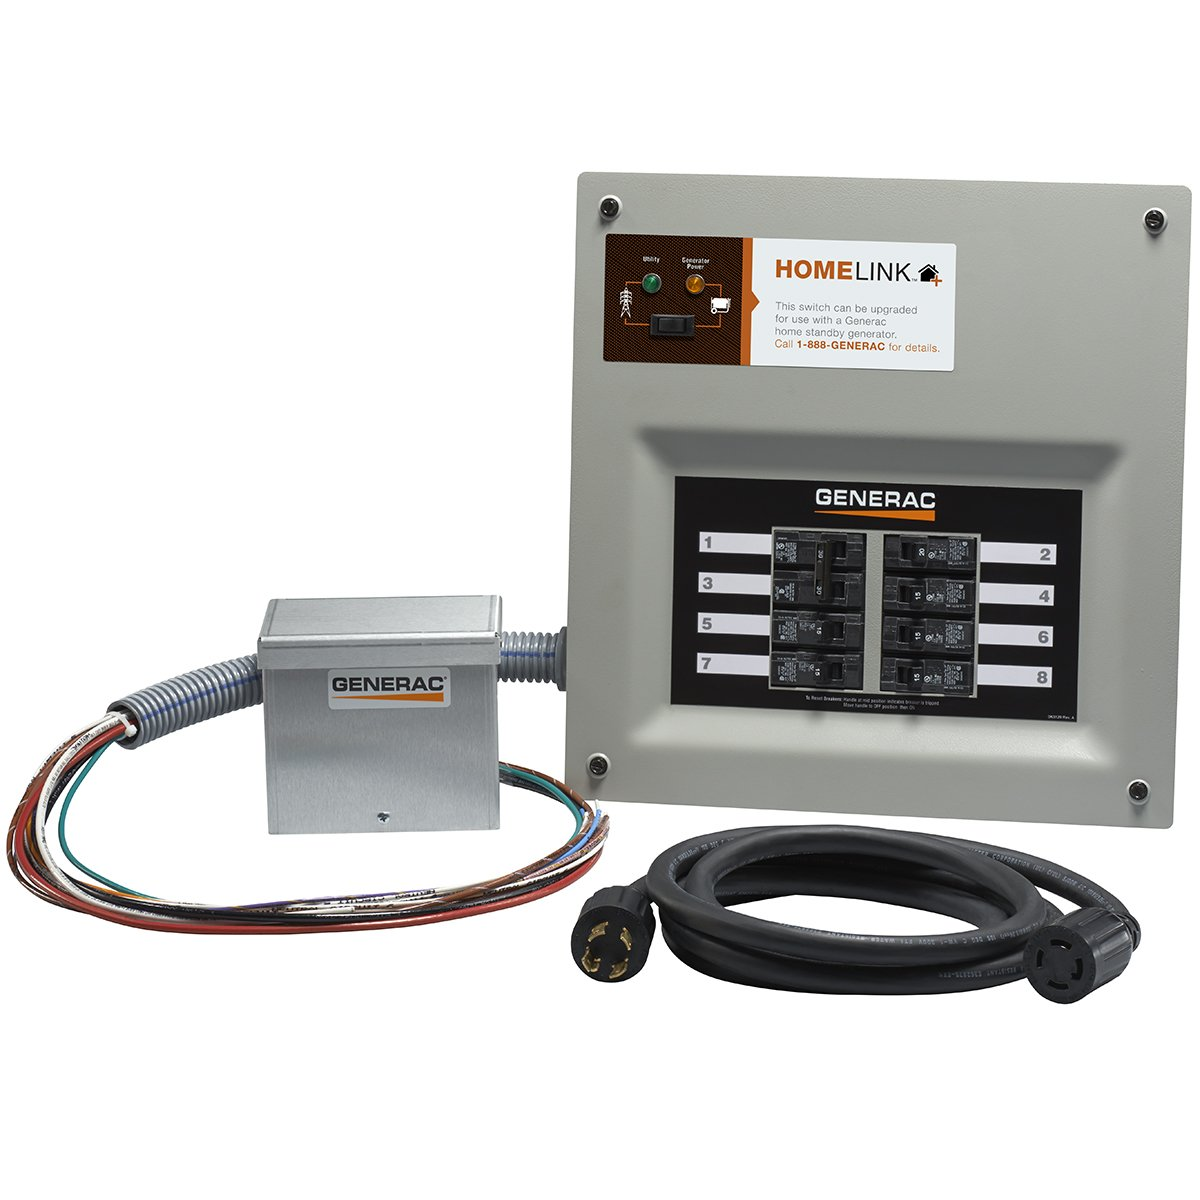 Generac 6854 Home Link Upgradeable 30 Amp Transfer Switch Kit with 10' Cord and Aluminum Power Inlet Box